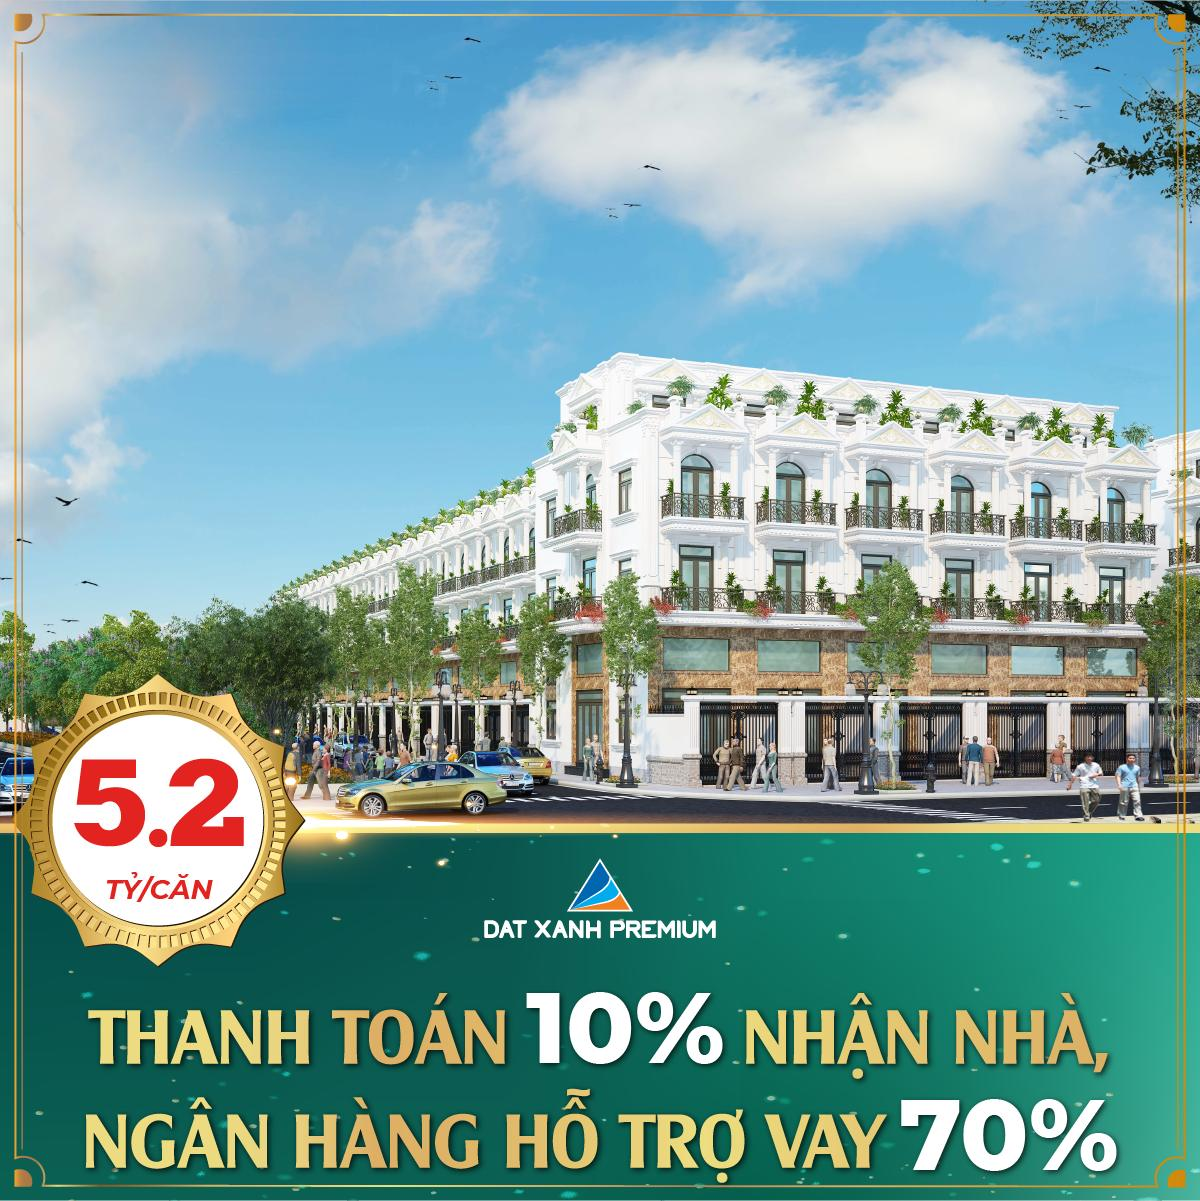 https://pres.vn/properties/one-palace